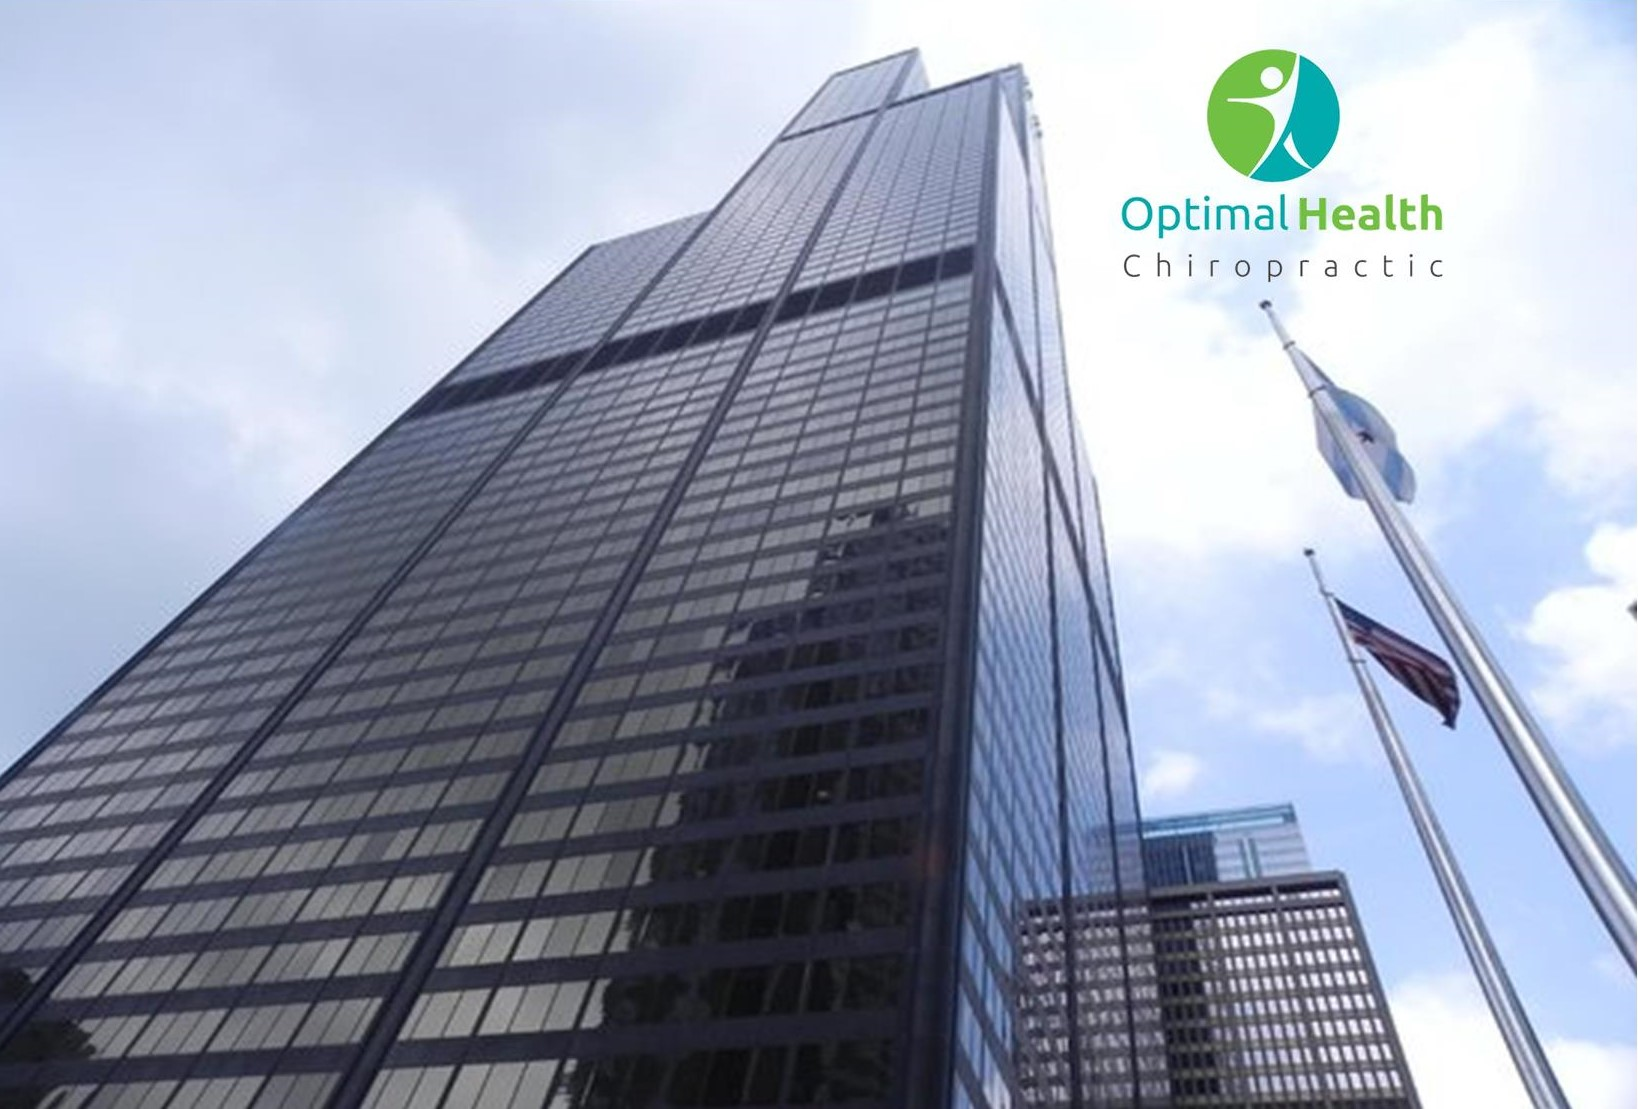 Optimal Health Chiropractic and Rehabilitation reviews | Healthcare at 233 S Wacker Dr., 84th Floor - Chicago IL